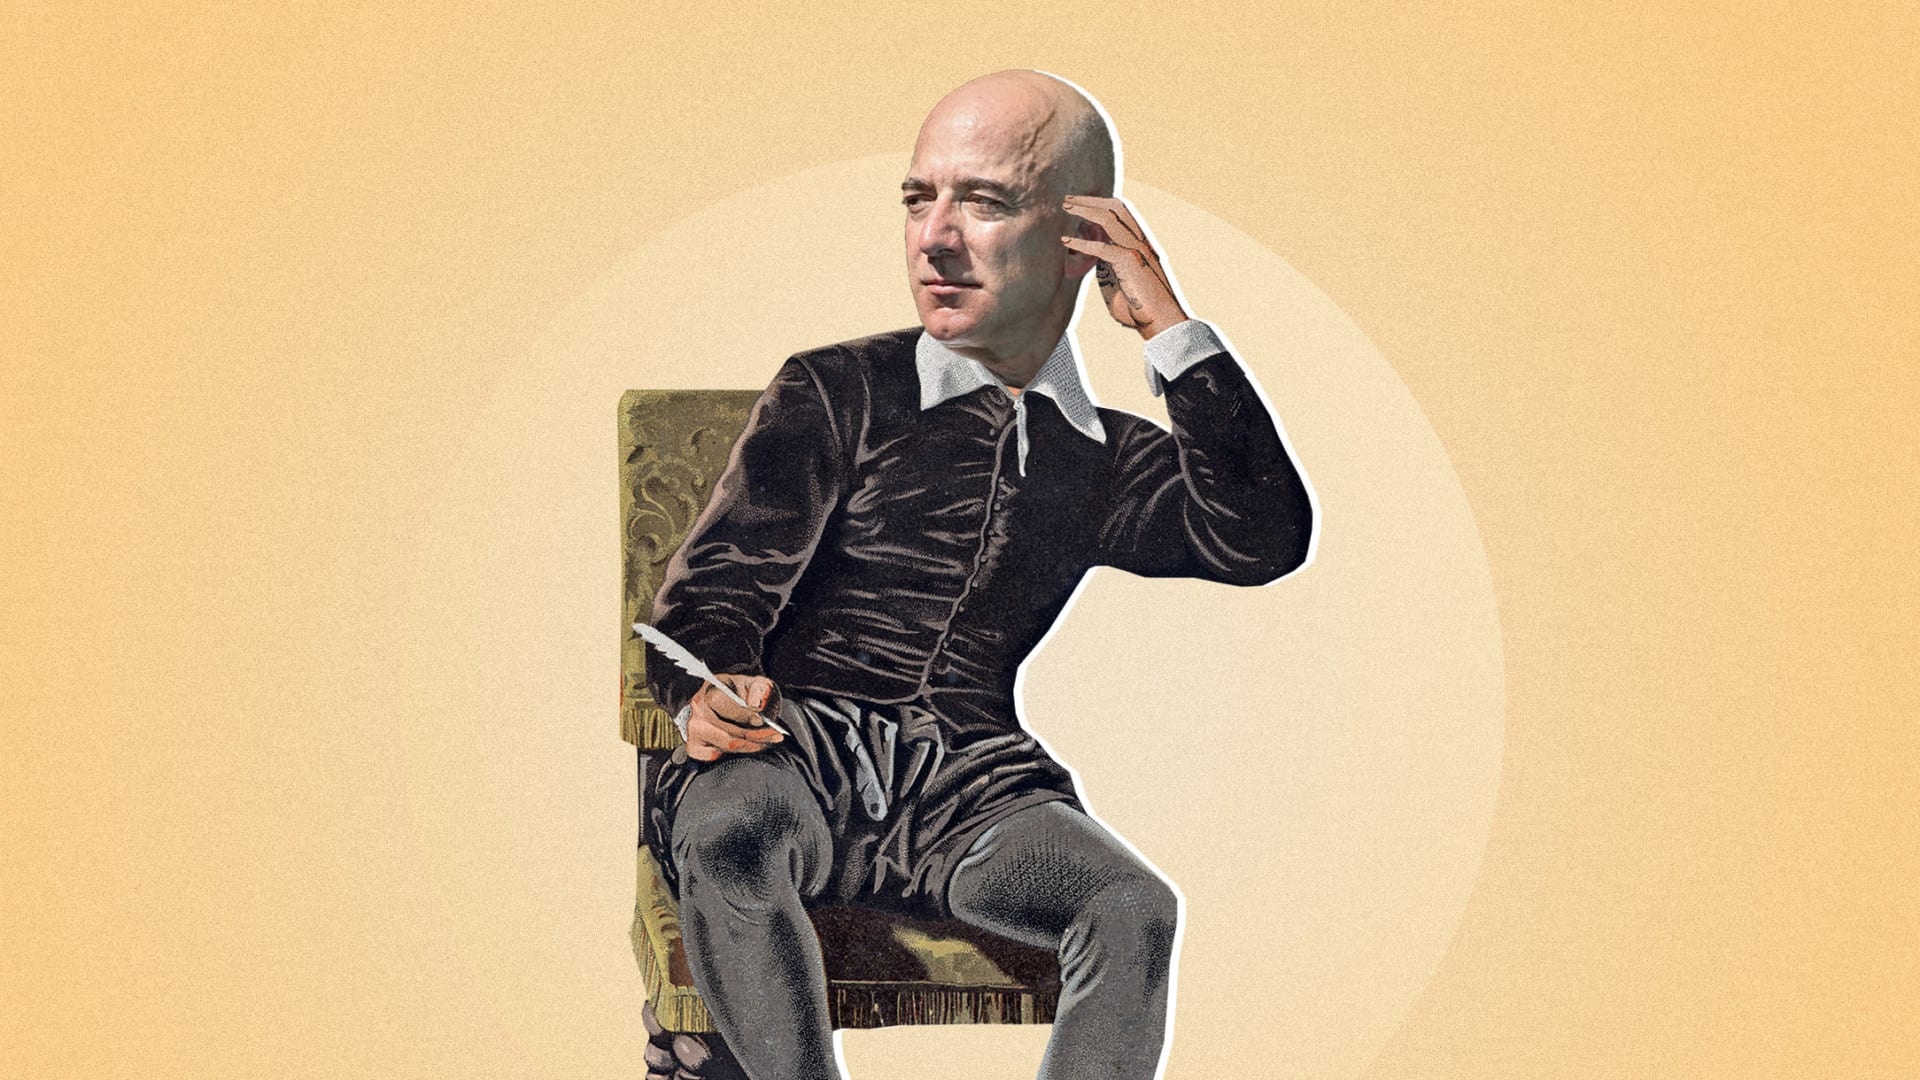 The Brutal Truth You Must Accept to Write Well, According to Jeff Bezos